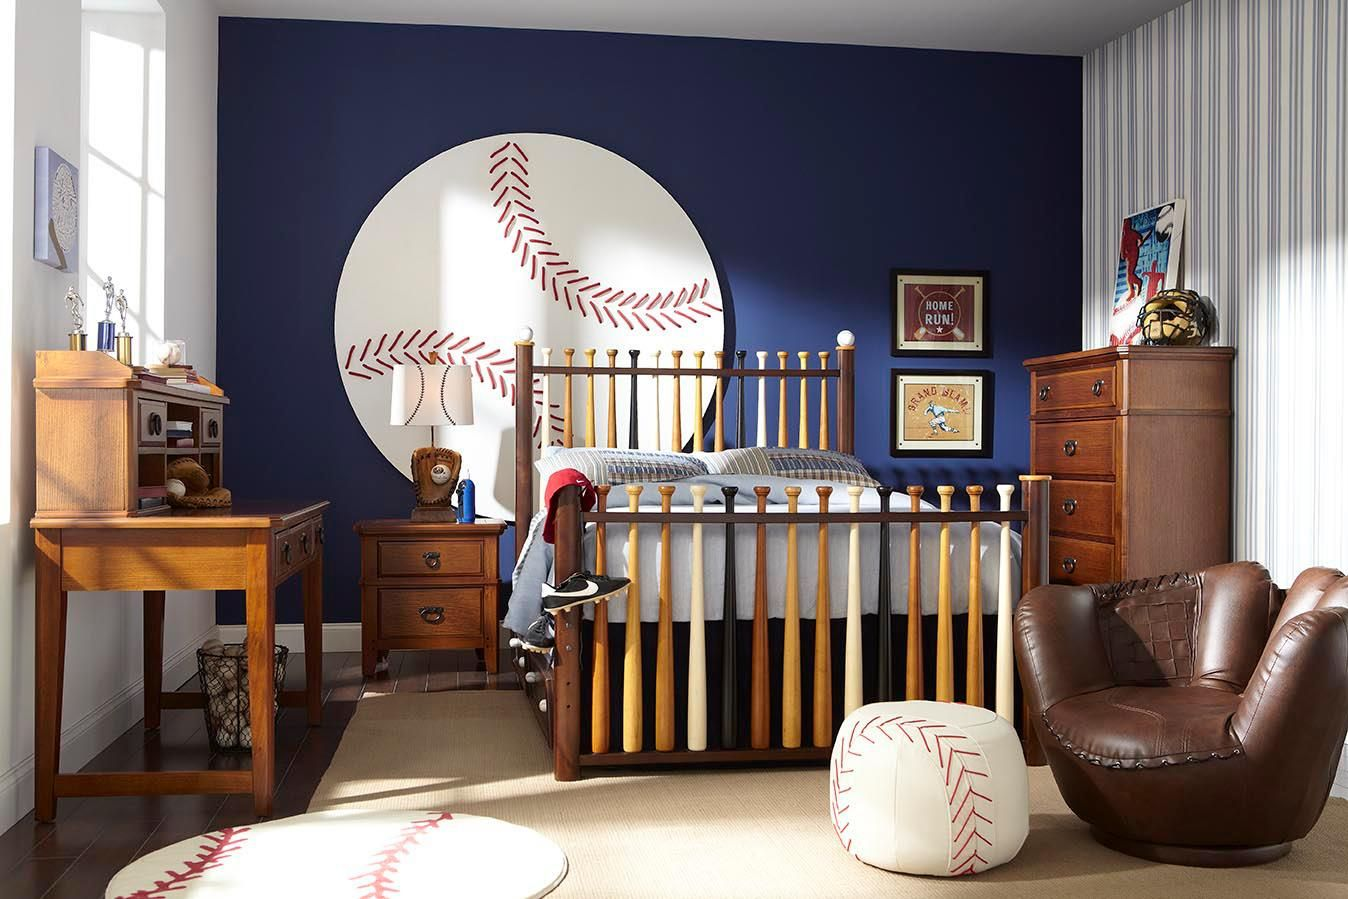 batter up 5 pc twin bedroom decor kid s bedrooms pinterest rh pinterest com Sports Room Baseball Bat